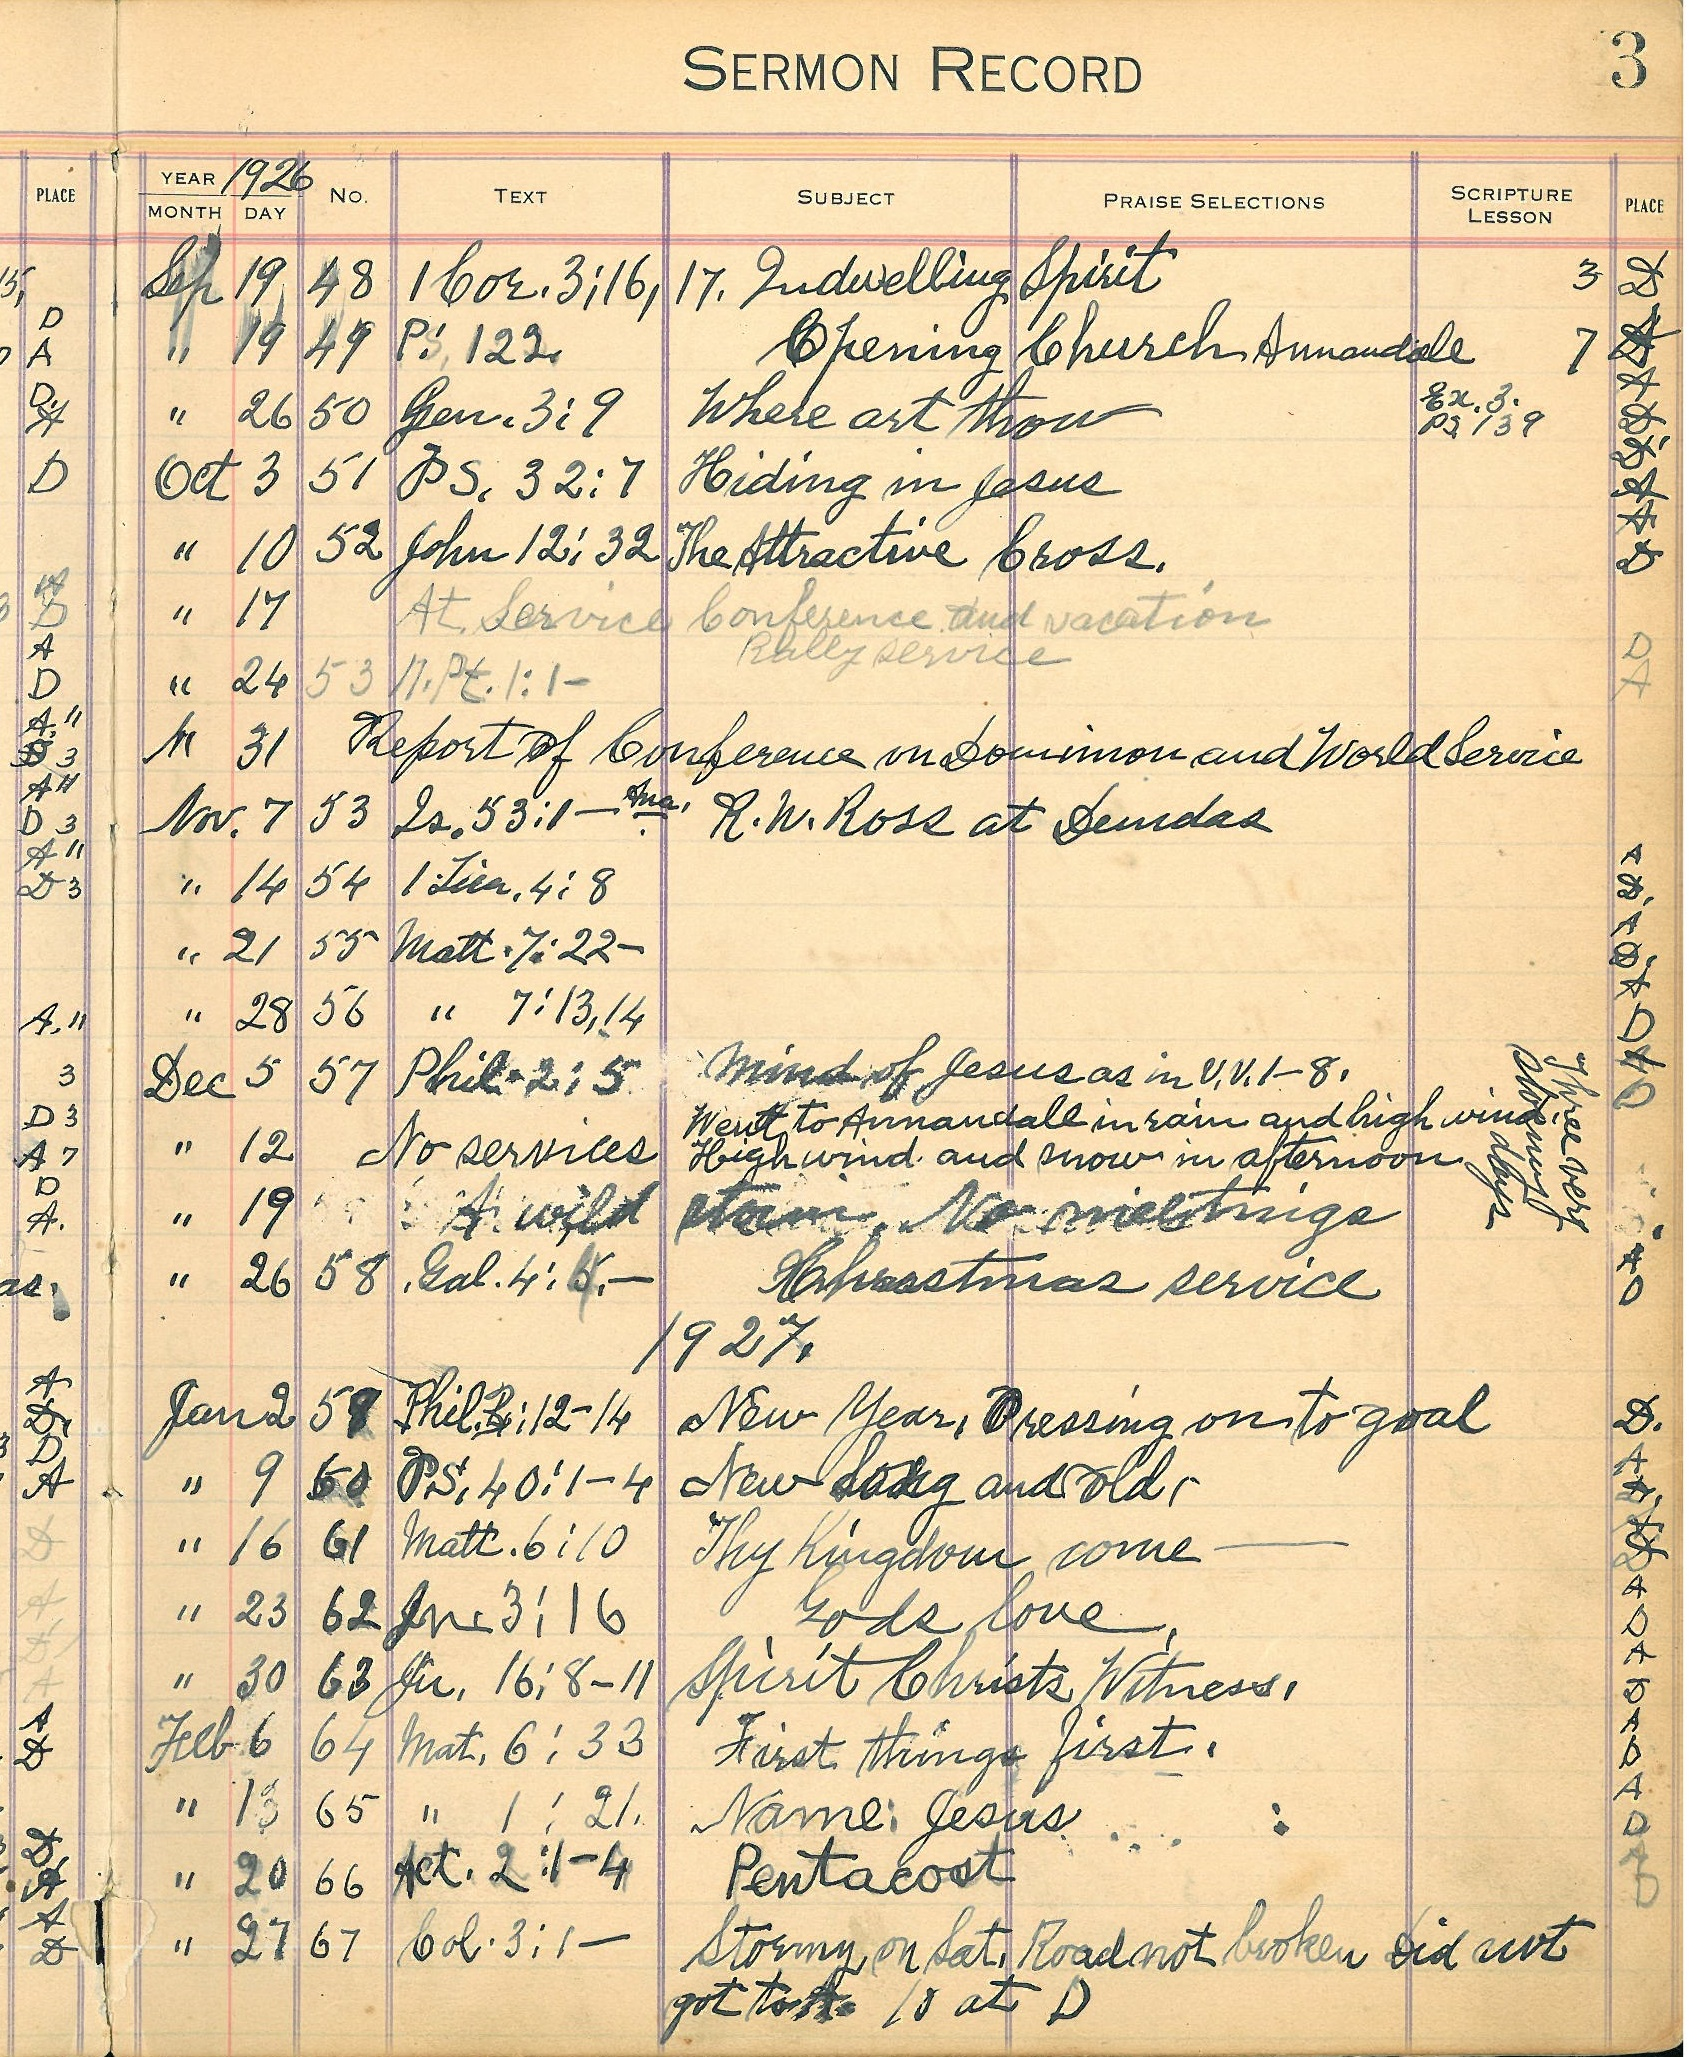 Central Kings Pastoral Charge Records Listing